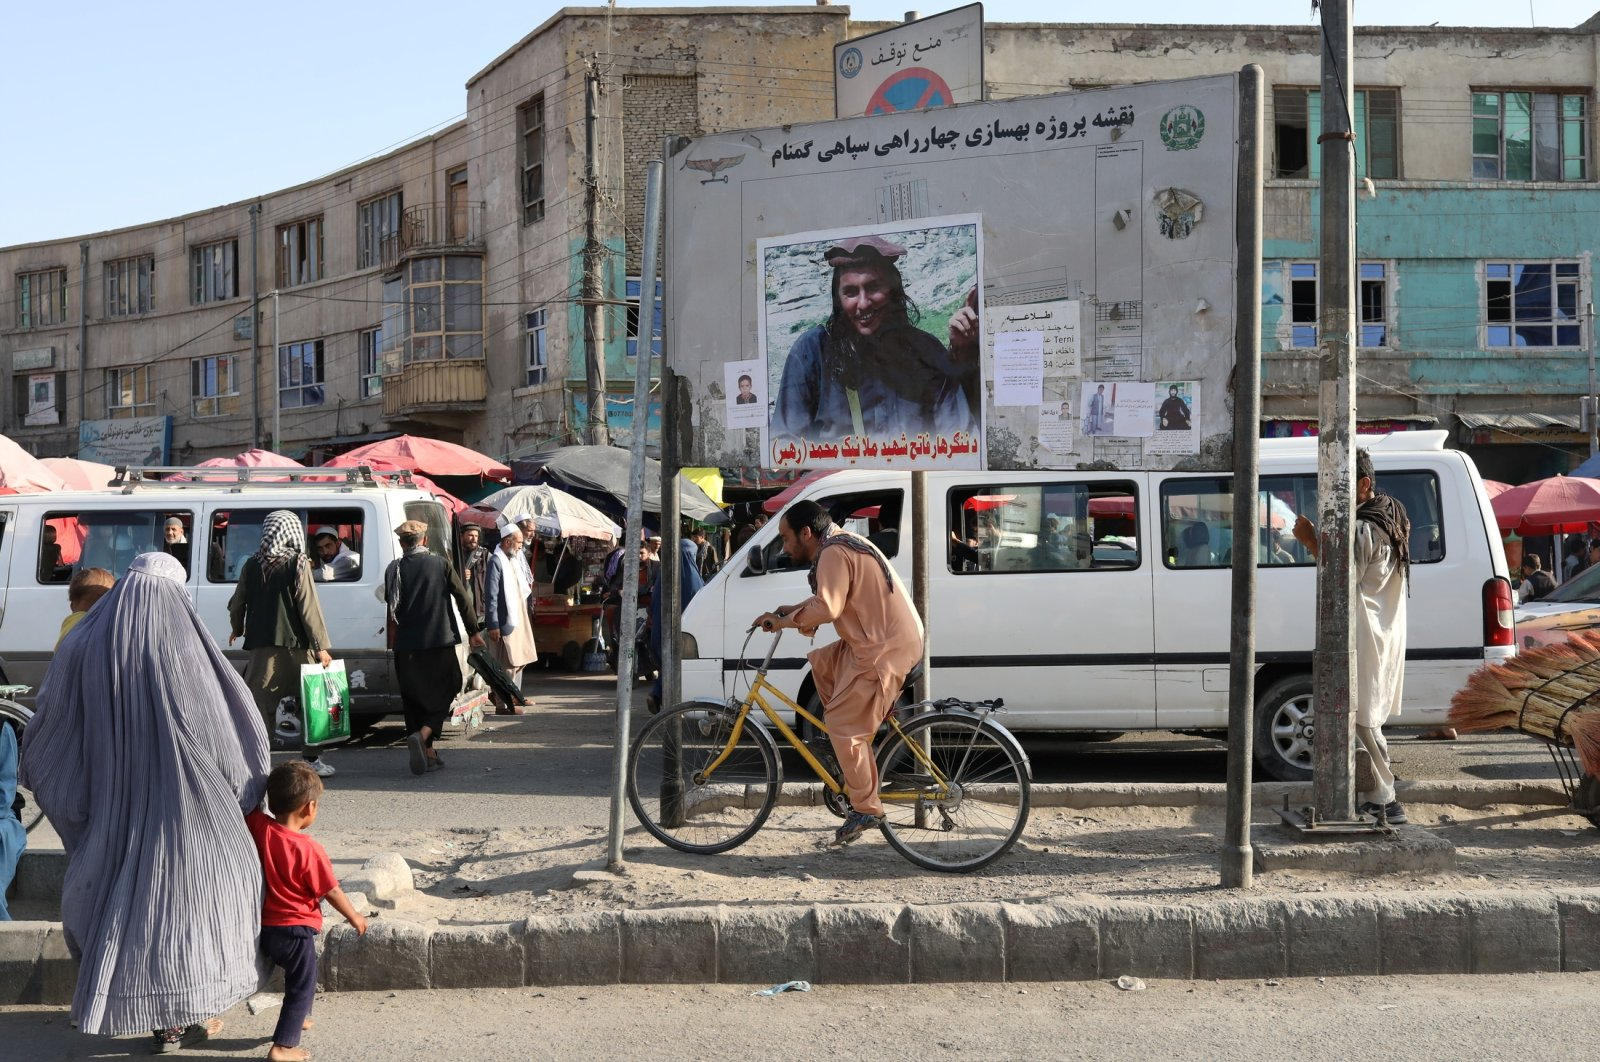 A photo of a martyred Taliban soldier is displayed on a billboard in Kabul, Afghanistan, Sept. 1, 2021. (West Asia News Agency via Reuters)